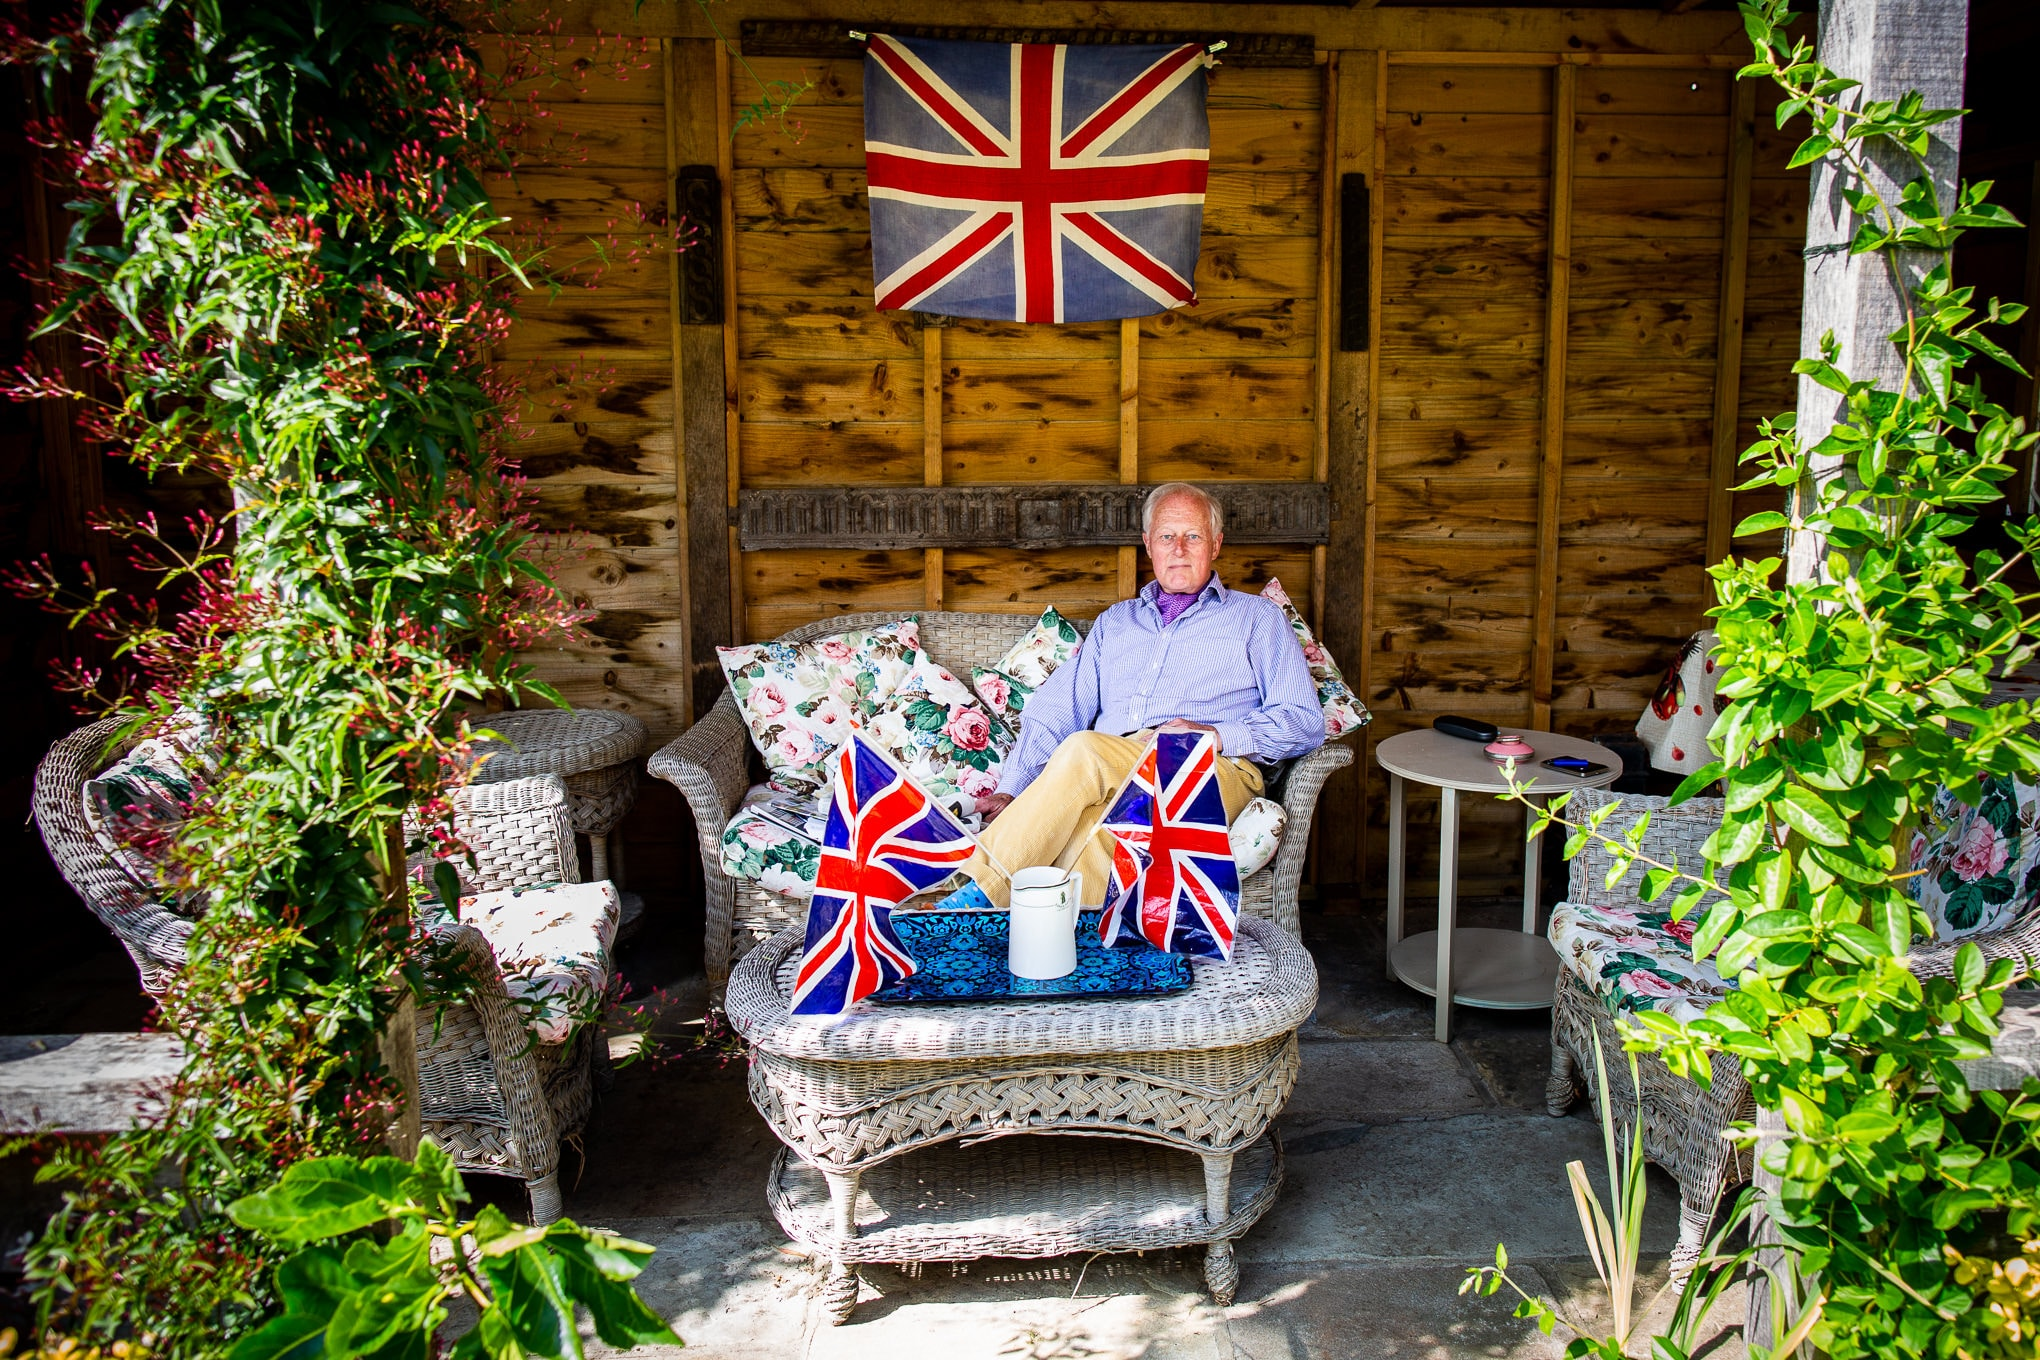 A man sits in garden in Faversham surrounded by union jack flags, photographed by documentary photographer Simon Hawkins